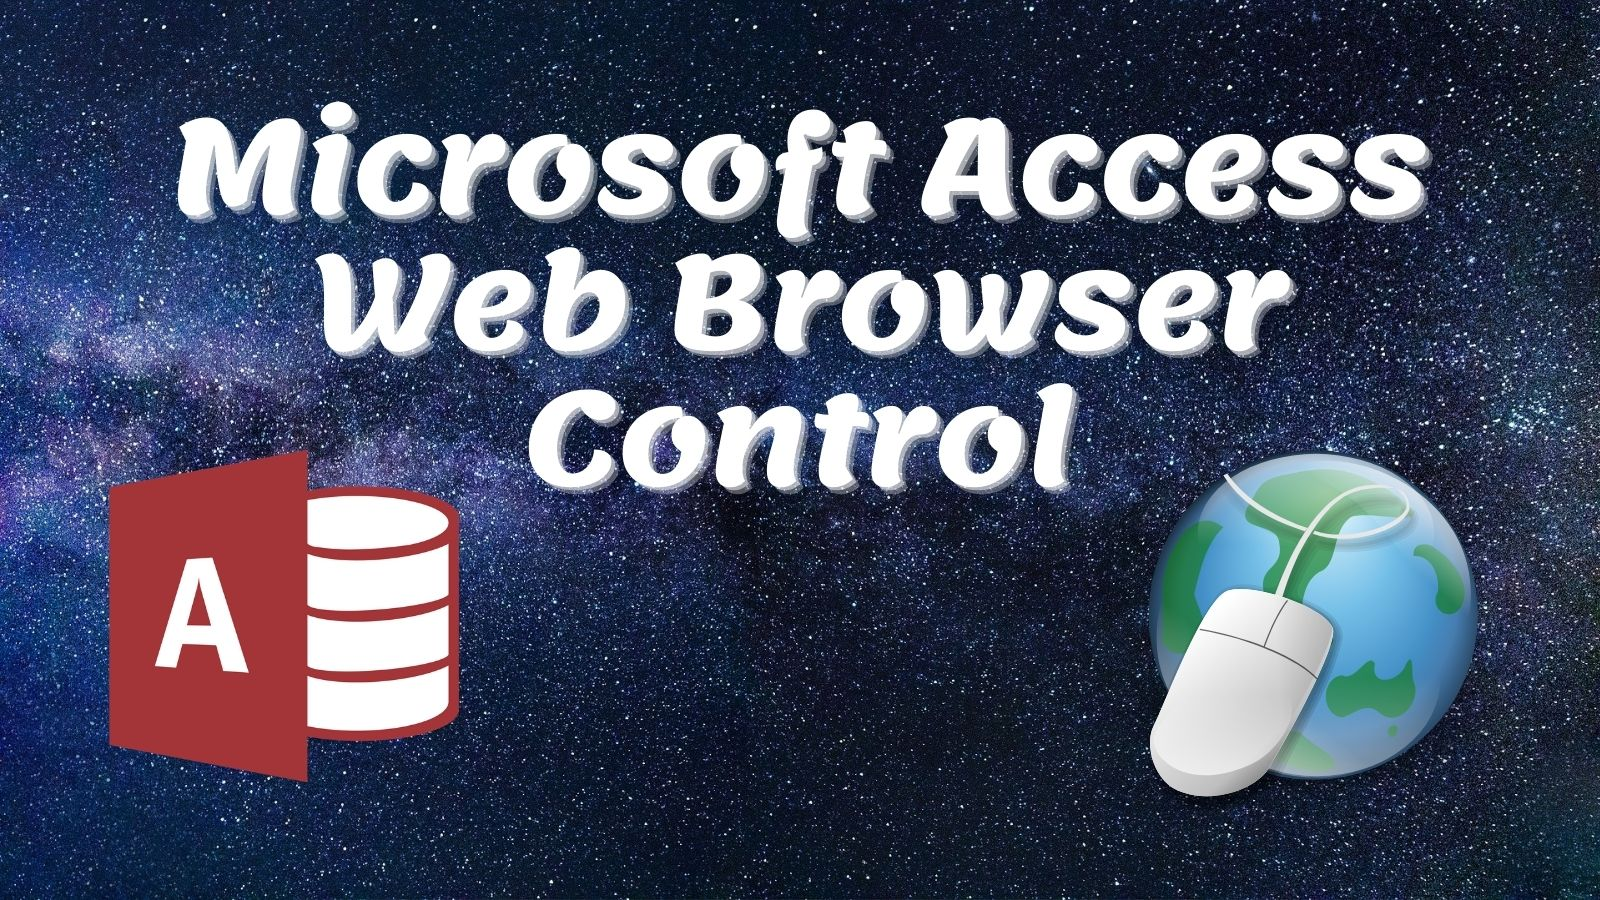 Access Web Browser Control